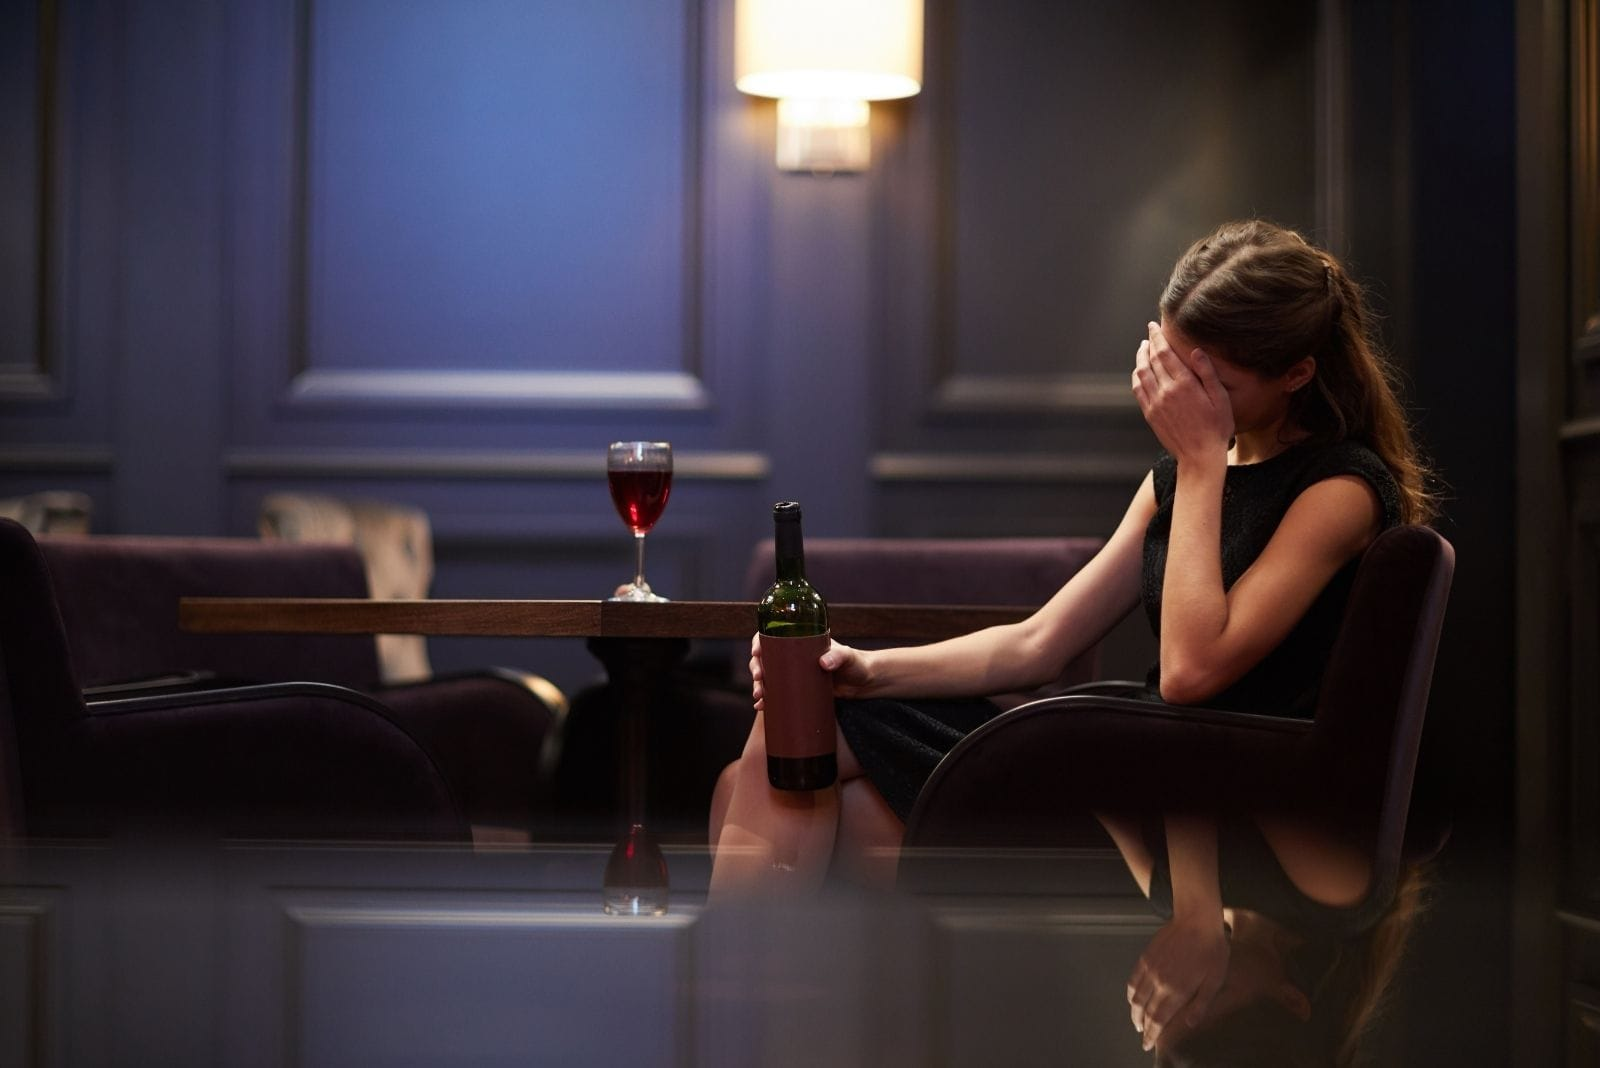 lonely young woman sad with a bottle of red wine in a luxurious hotel